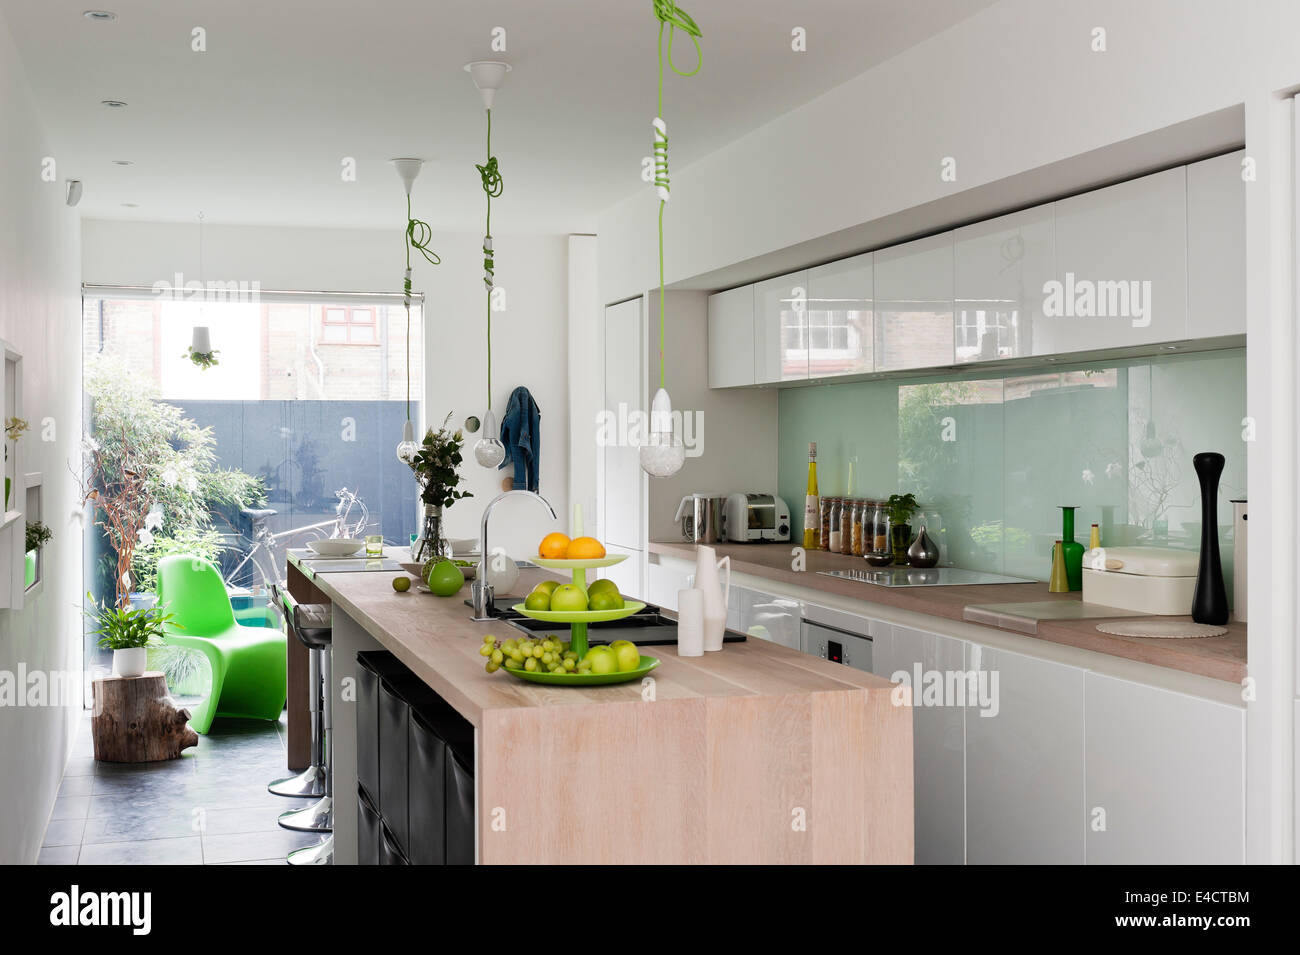 Modern kitchen from beeck kuechen the green corded pendant lights the green corded pendant lights are by nud and the green s chair by verner panton aloadofball Choice Image